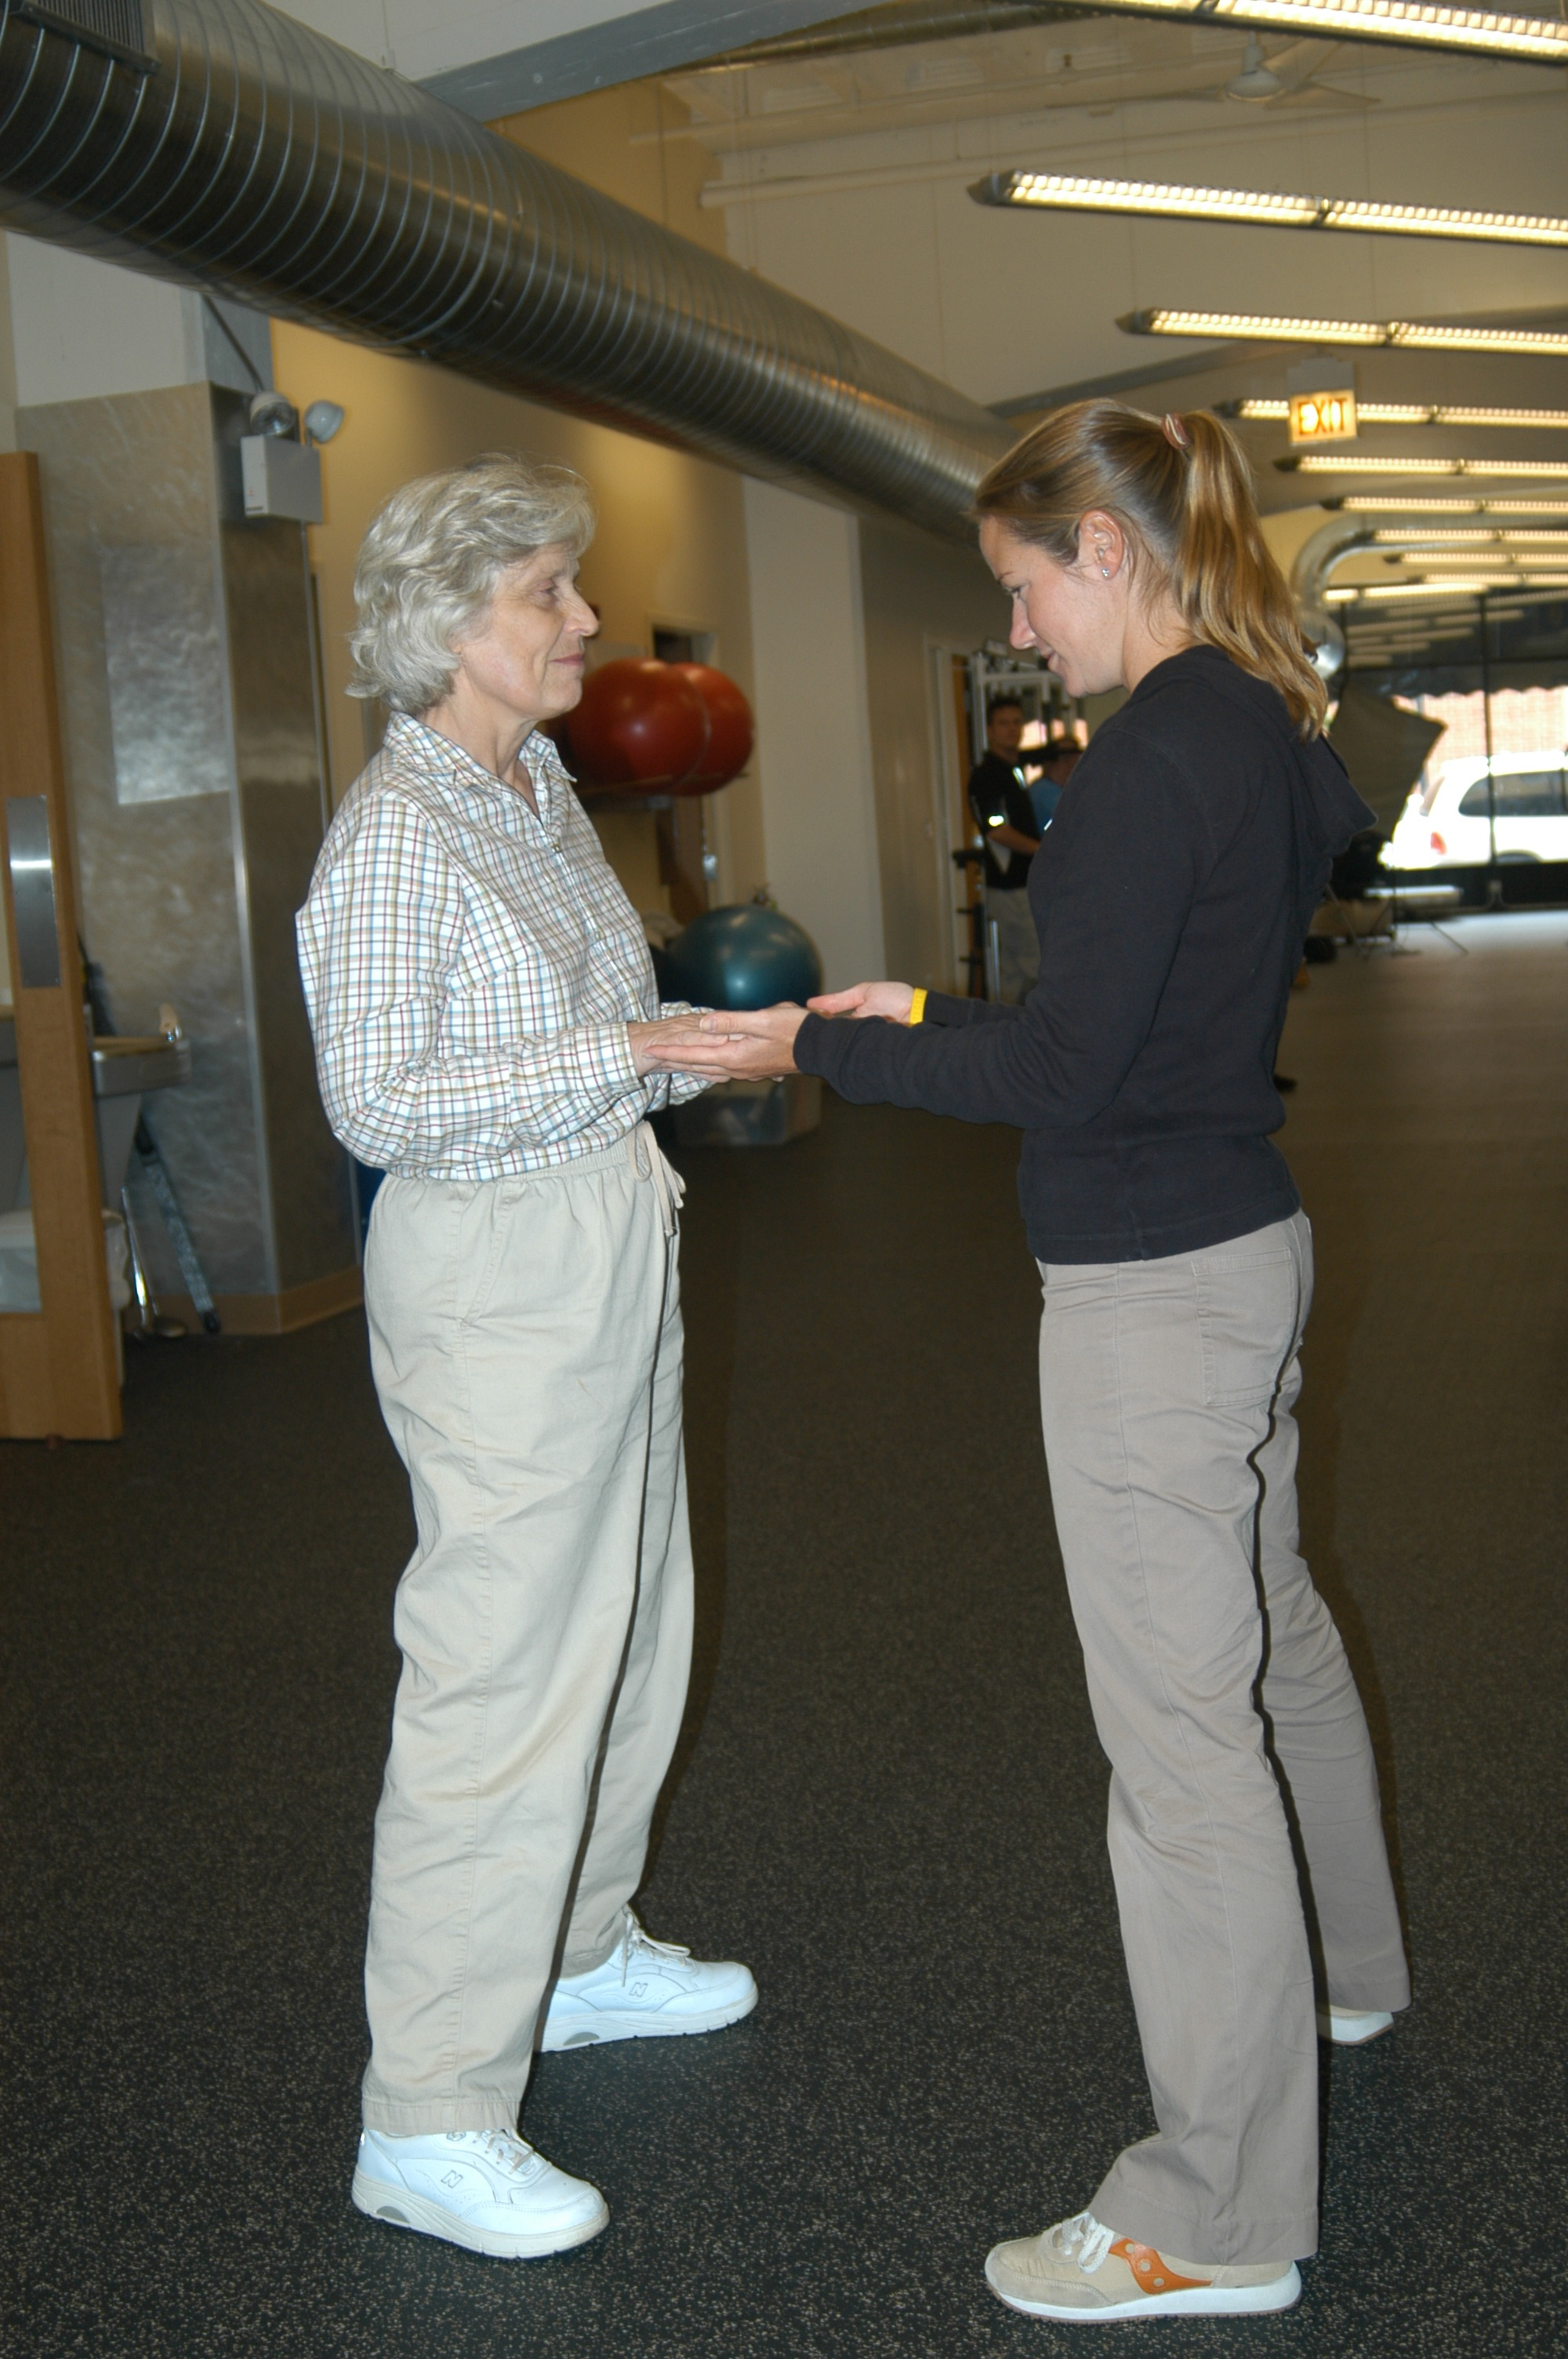 Balance and physical therapy - Vestibular Physical Therapy